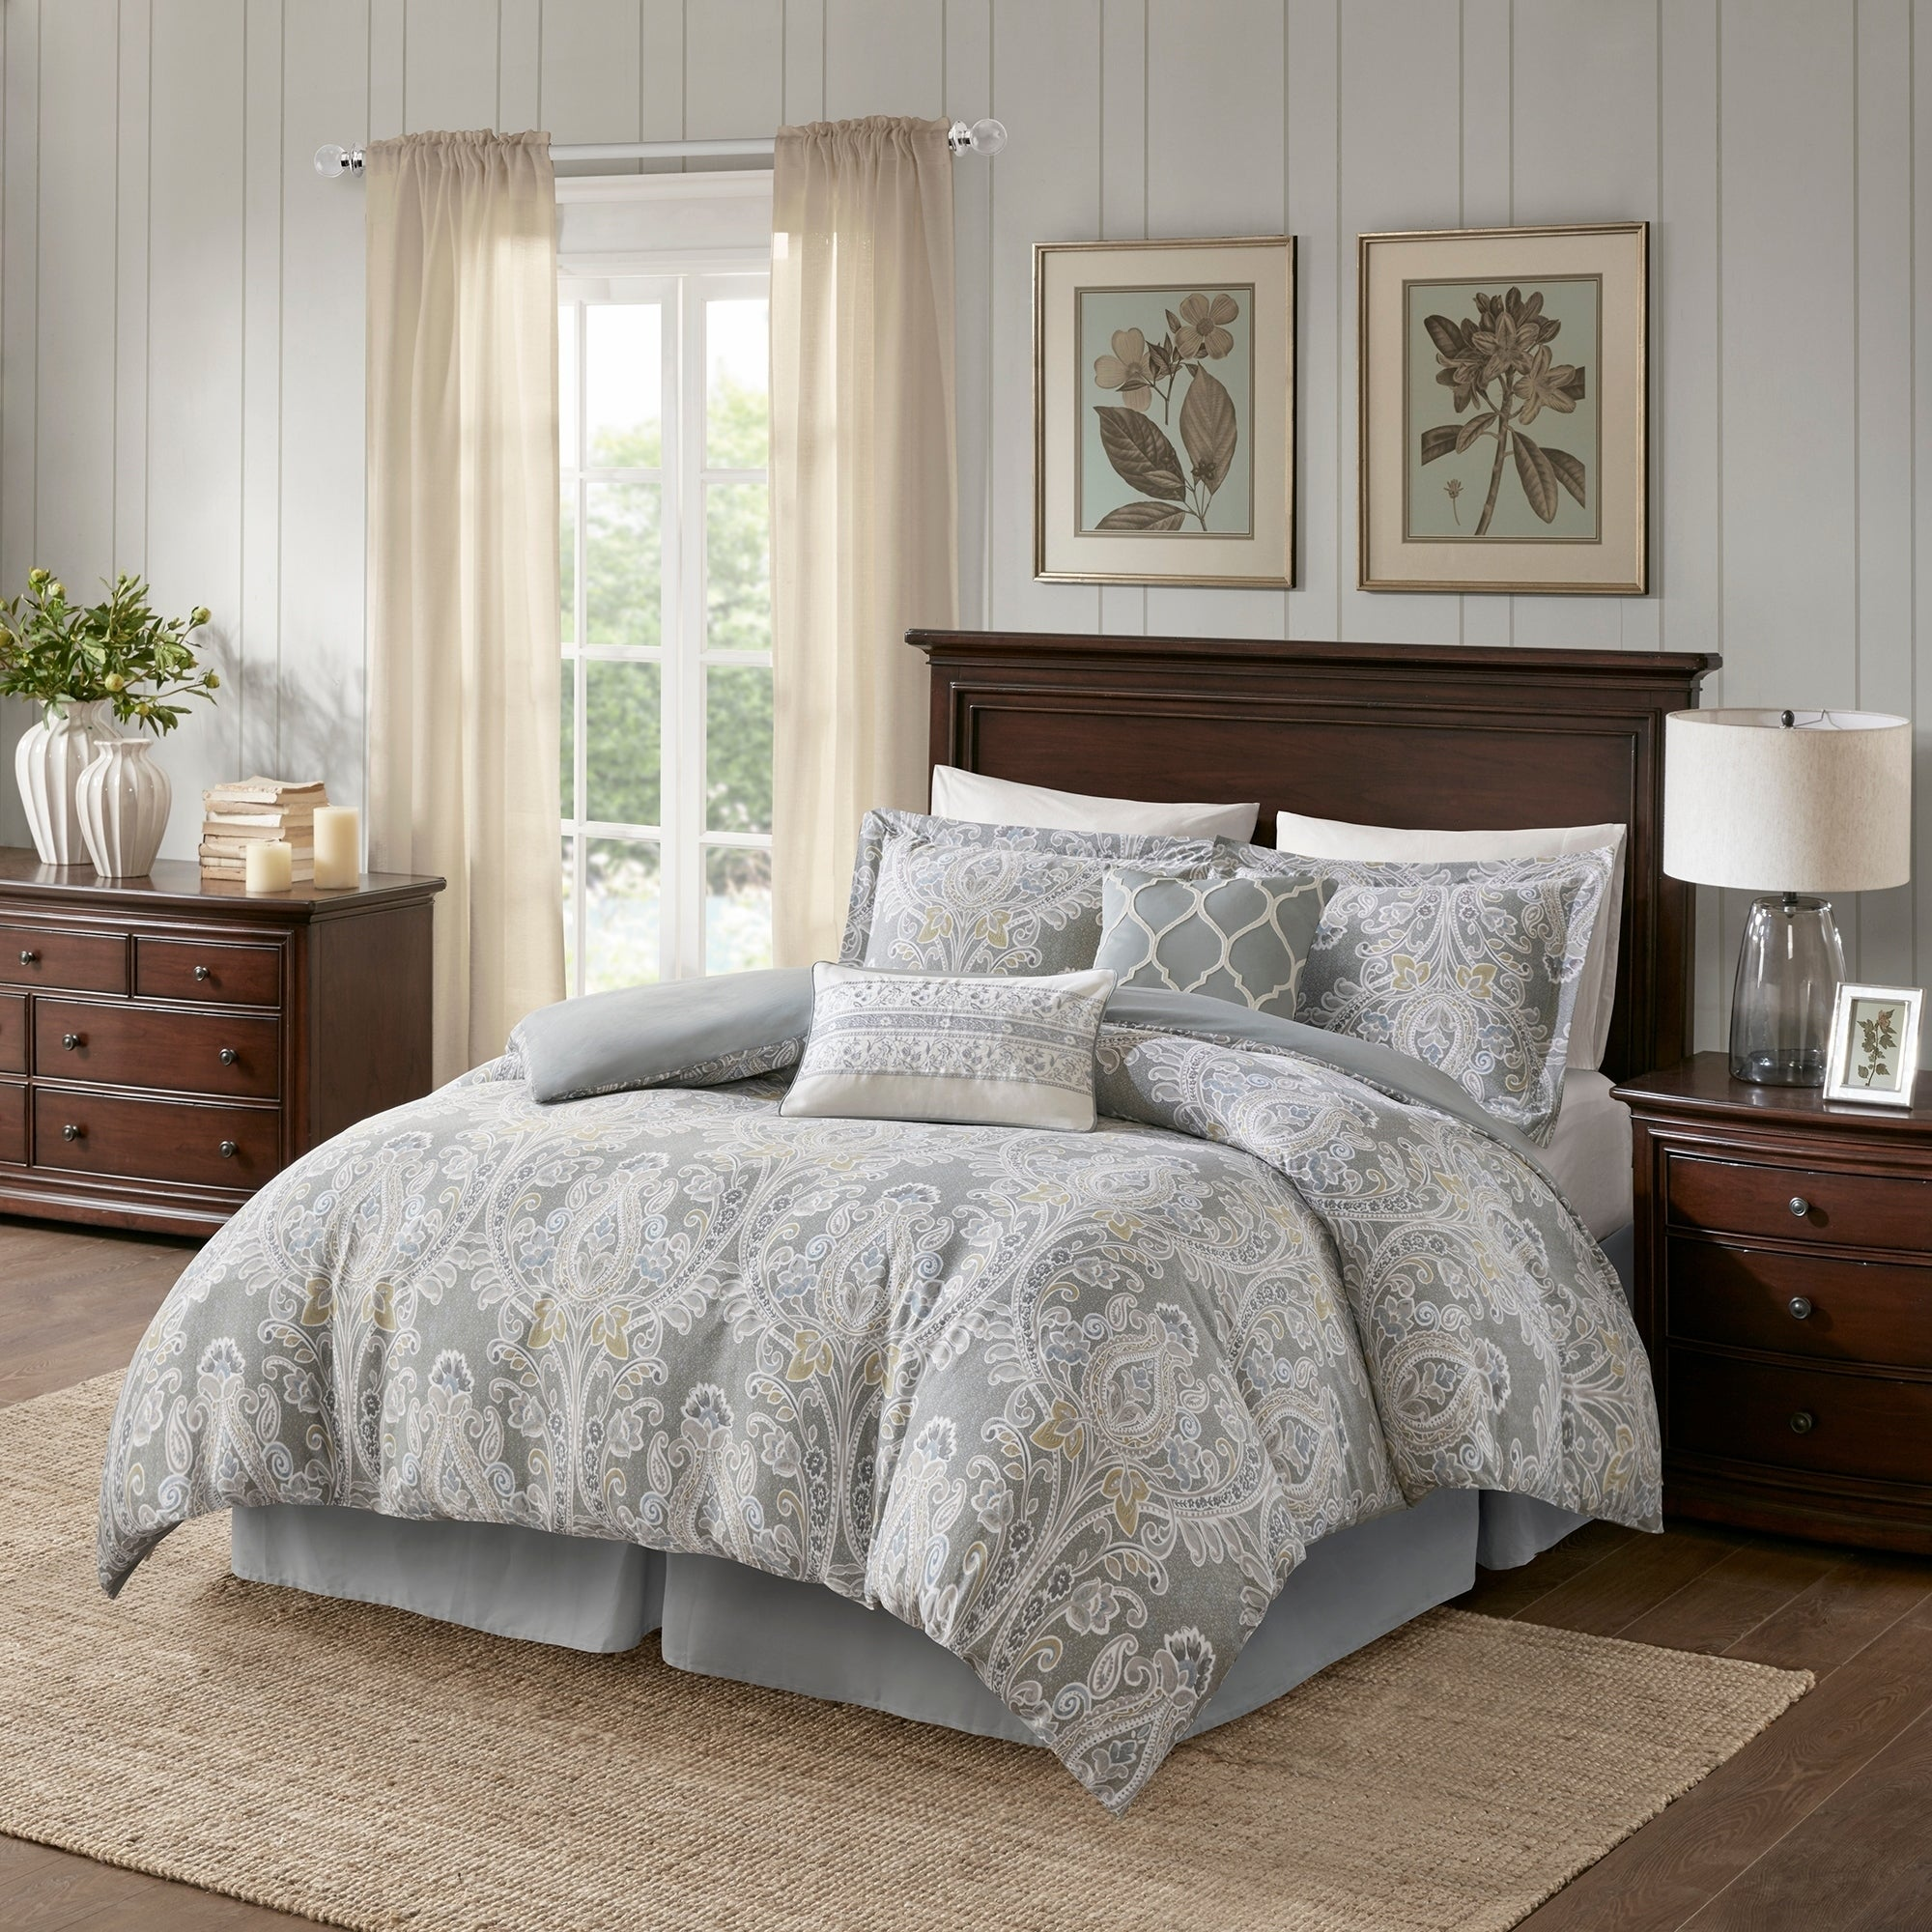 Exceptional Shop Harbor House Hallie 6 Piece Cotton Comforter Set   Free Shipping Today    Overstock.com   20745515